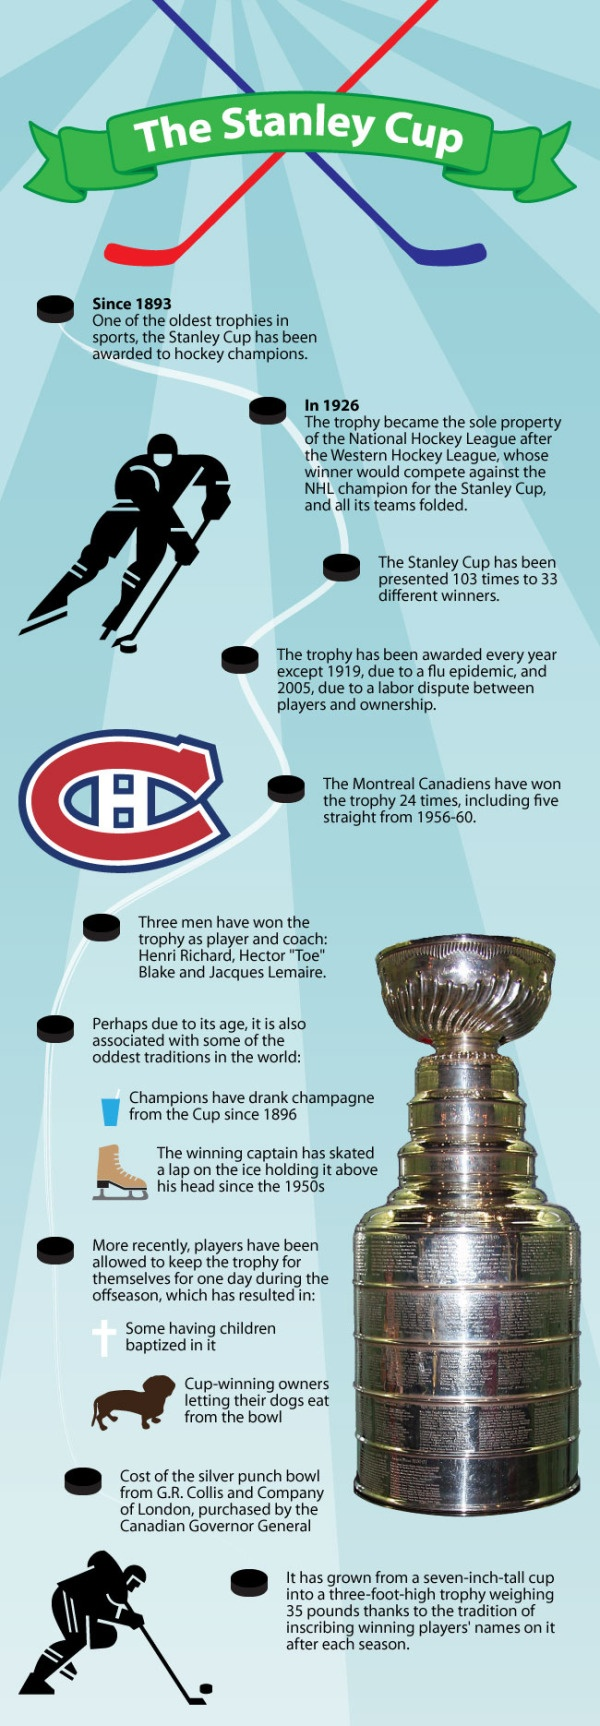 Stanley Cup Infographic. The Stanley Cup is THE HARDEST championship to attain. If you disagree, when YOUR favorite sport can achieve obtaining the championship trophy for it's respective league ON ICE, come talk to me. Until then, I'm right: Stanley Cup is ULTIMATE.